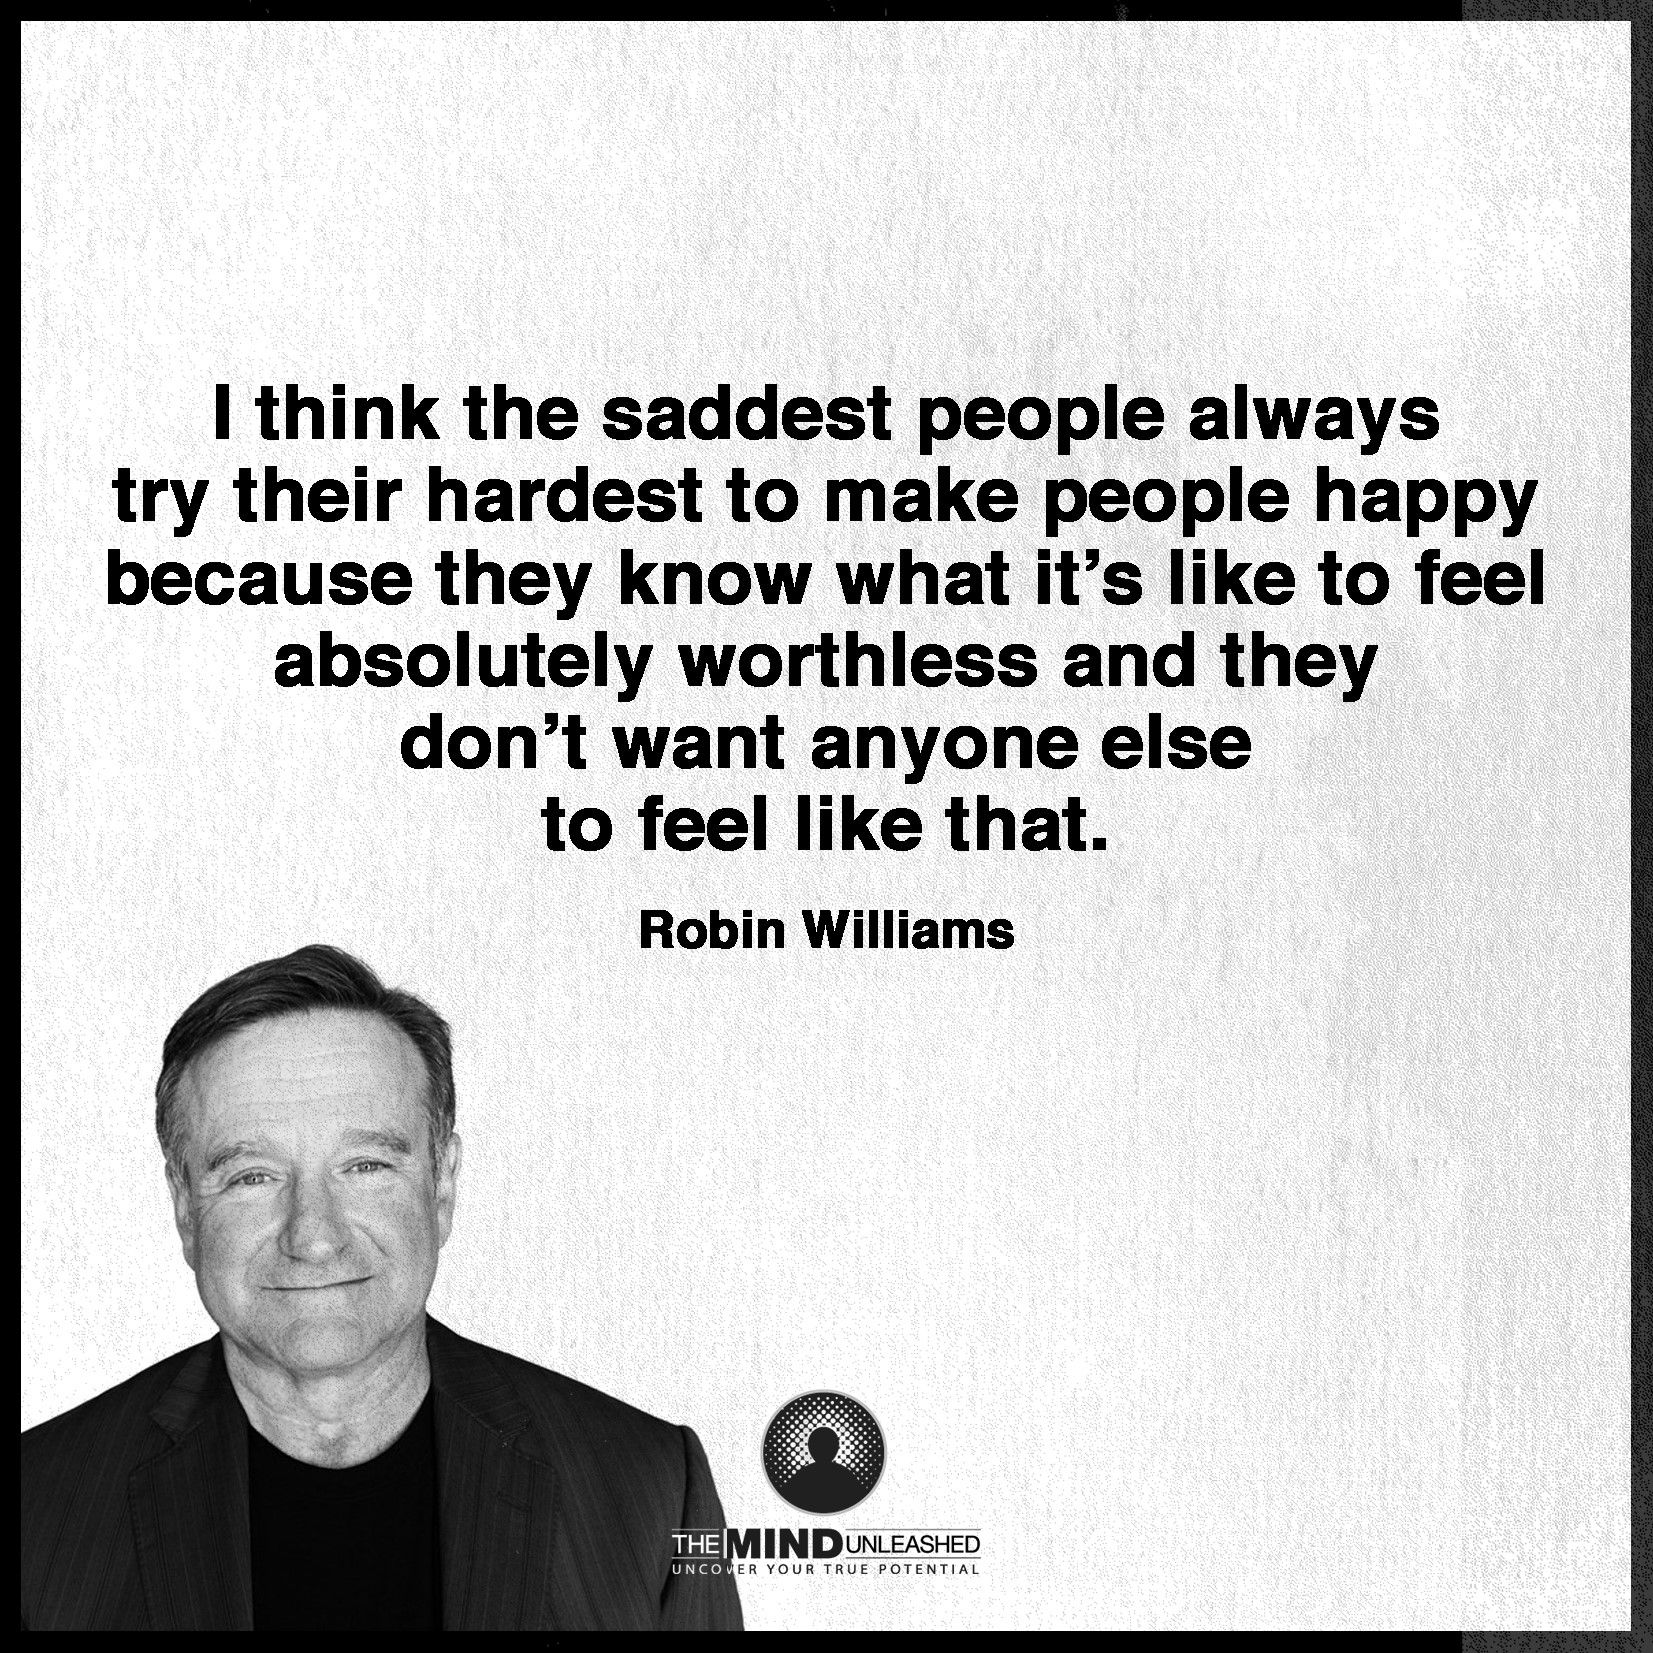 Pin by Avery Vale on Oasis Positive mental health, Robin